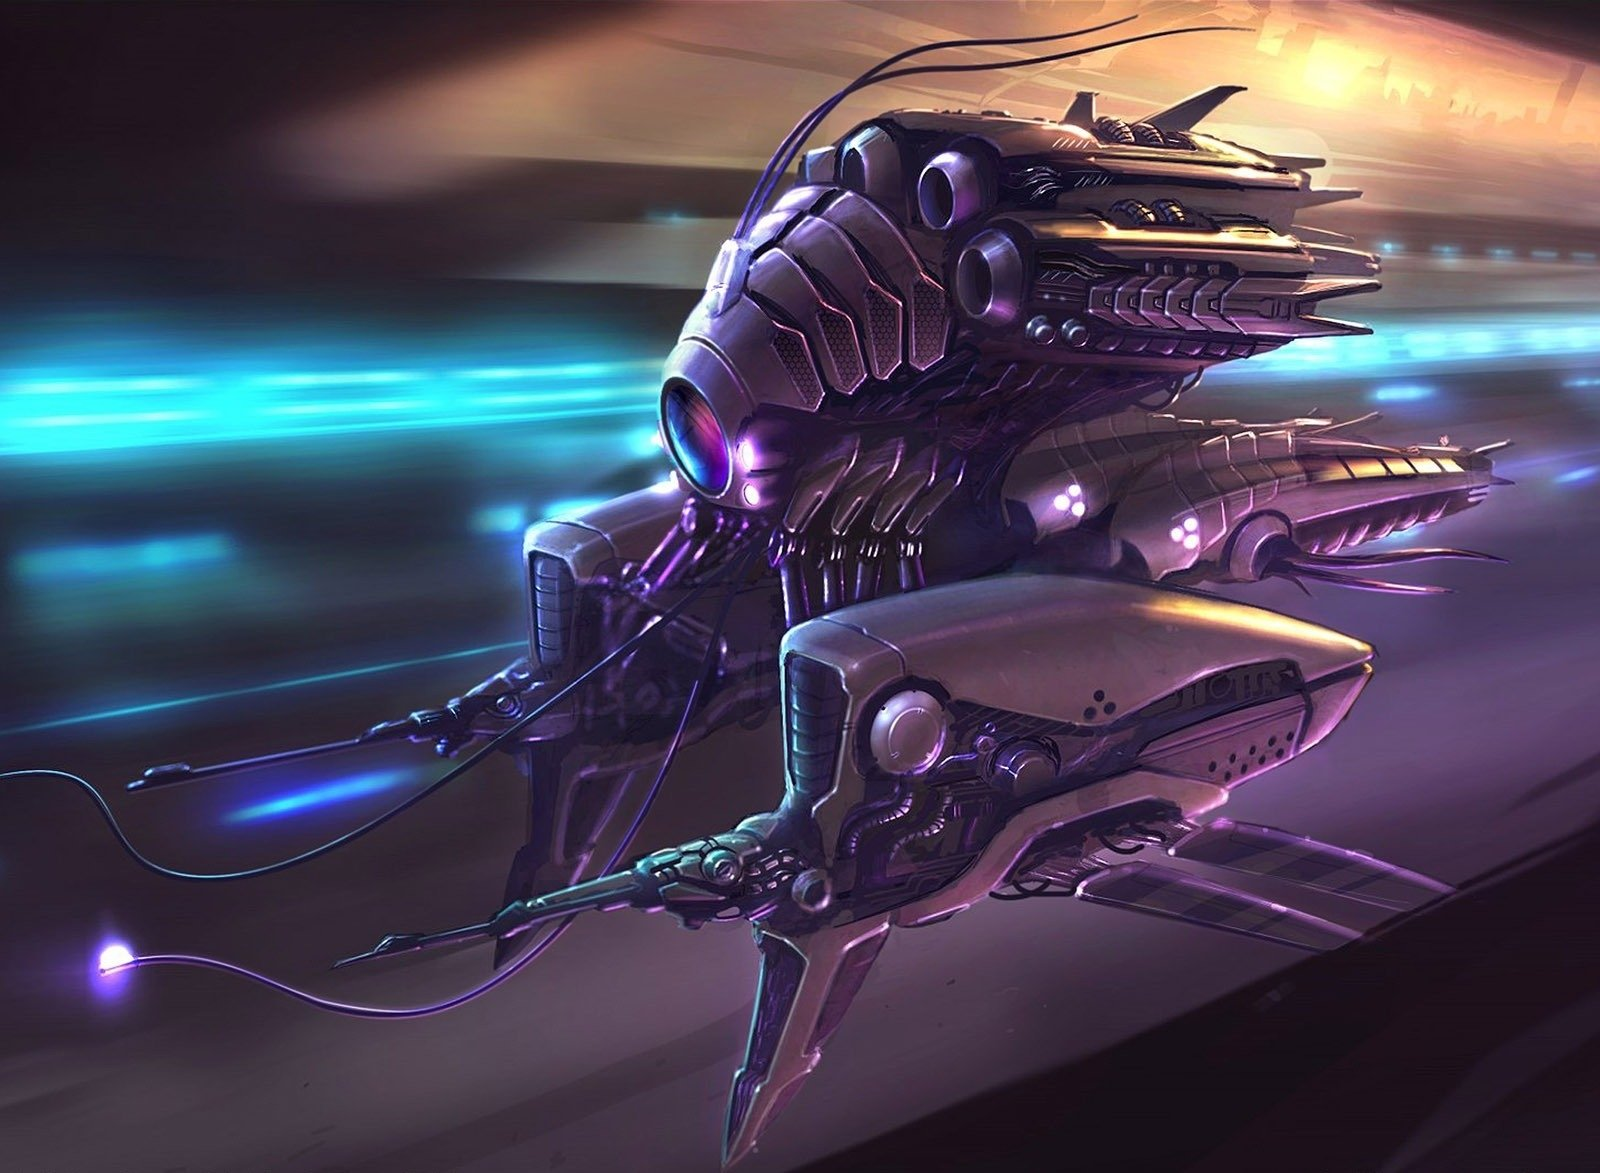 Sci Fi - Spaceship  Sci Fi Technology Alien Weapon Wallpaper